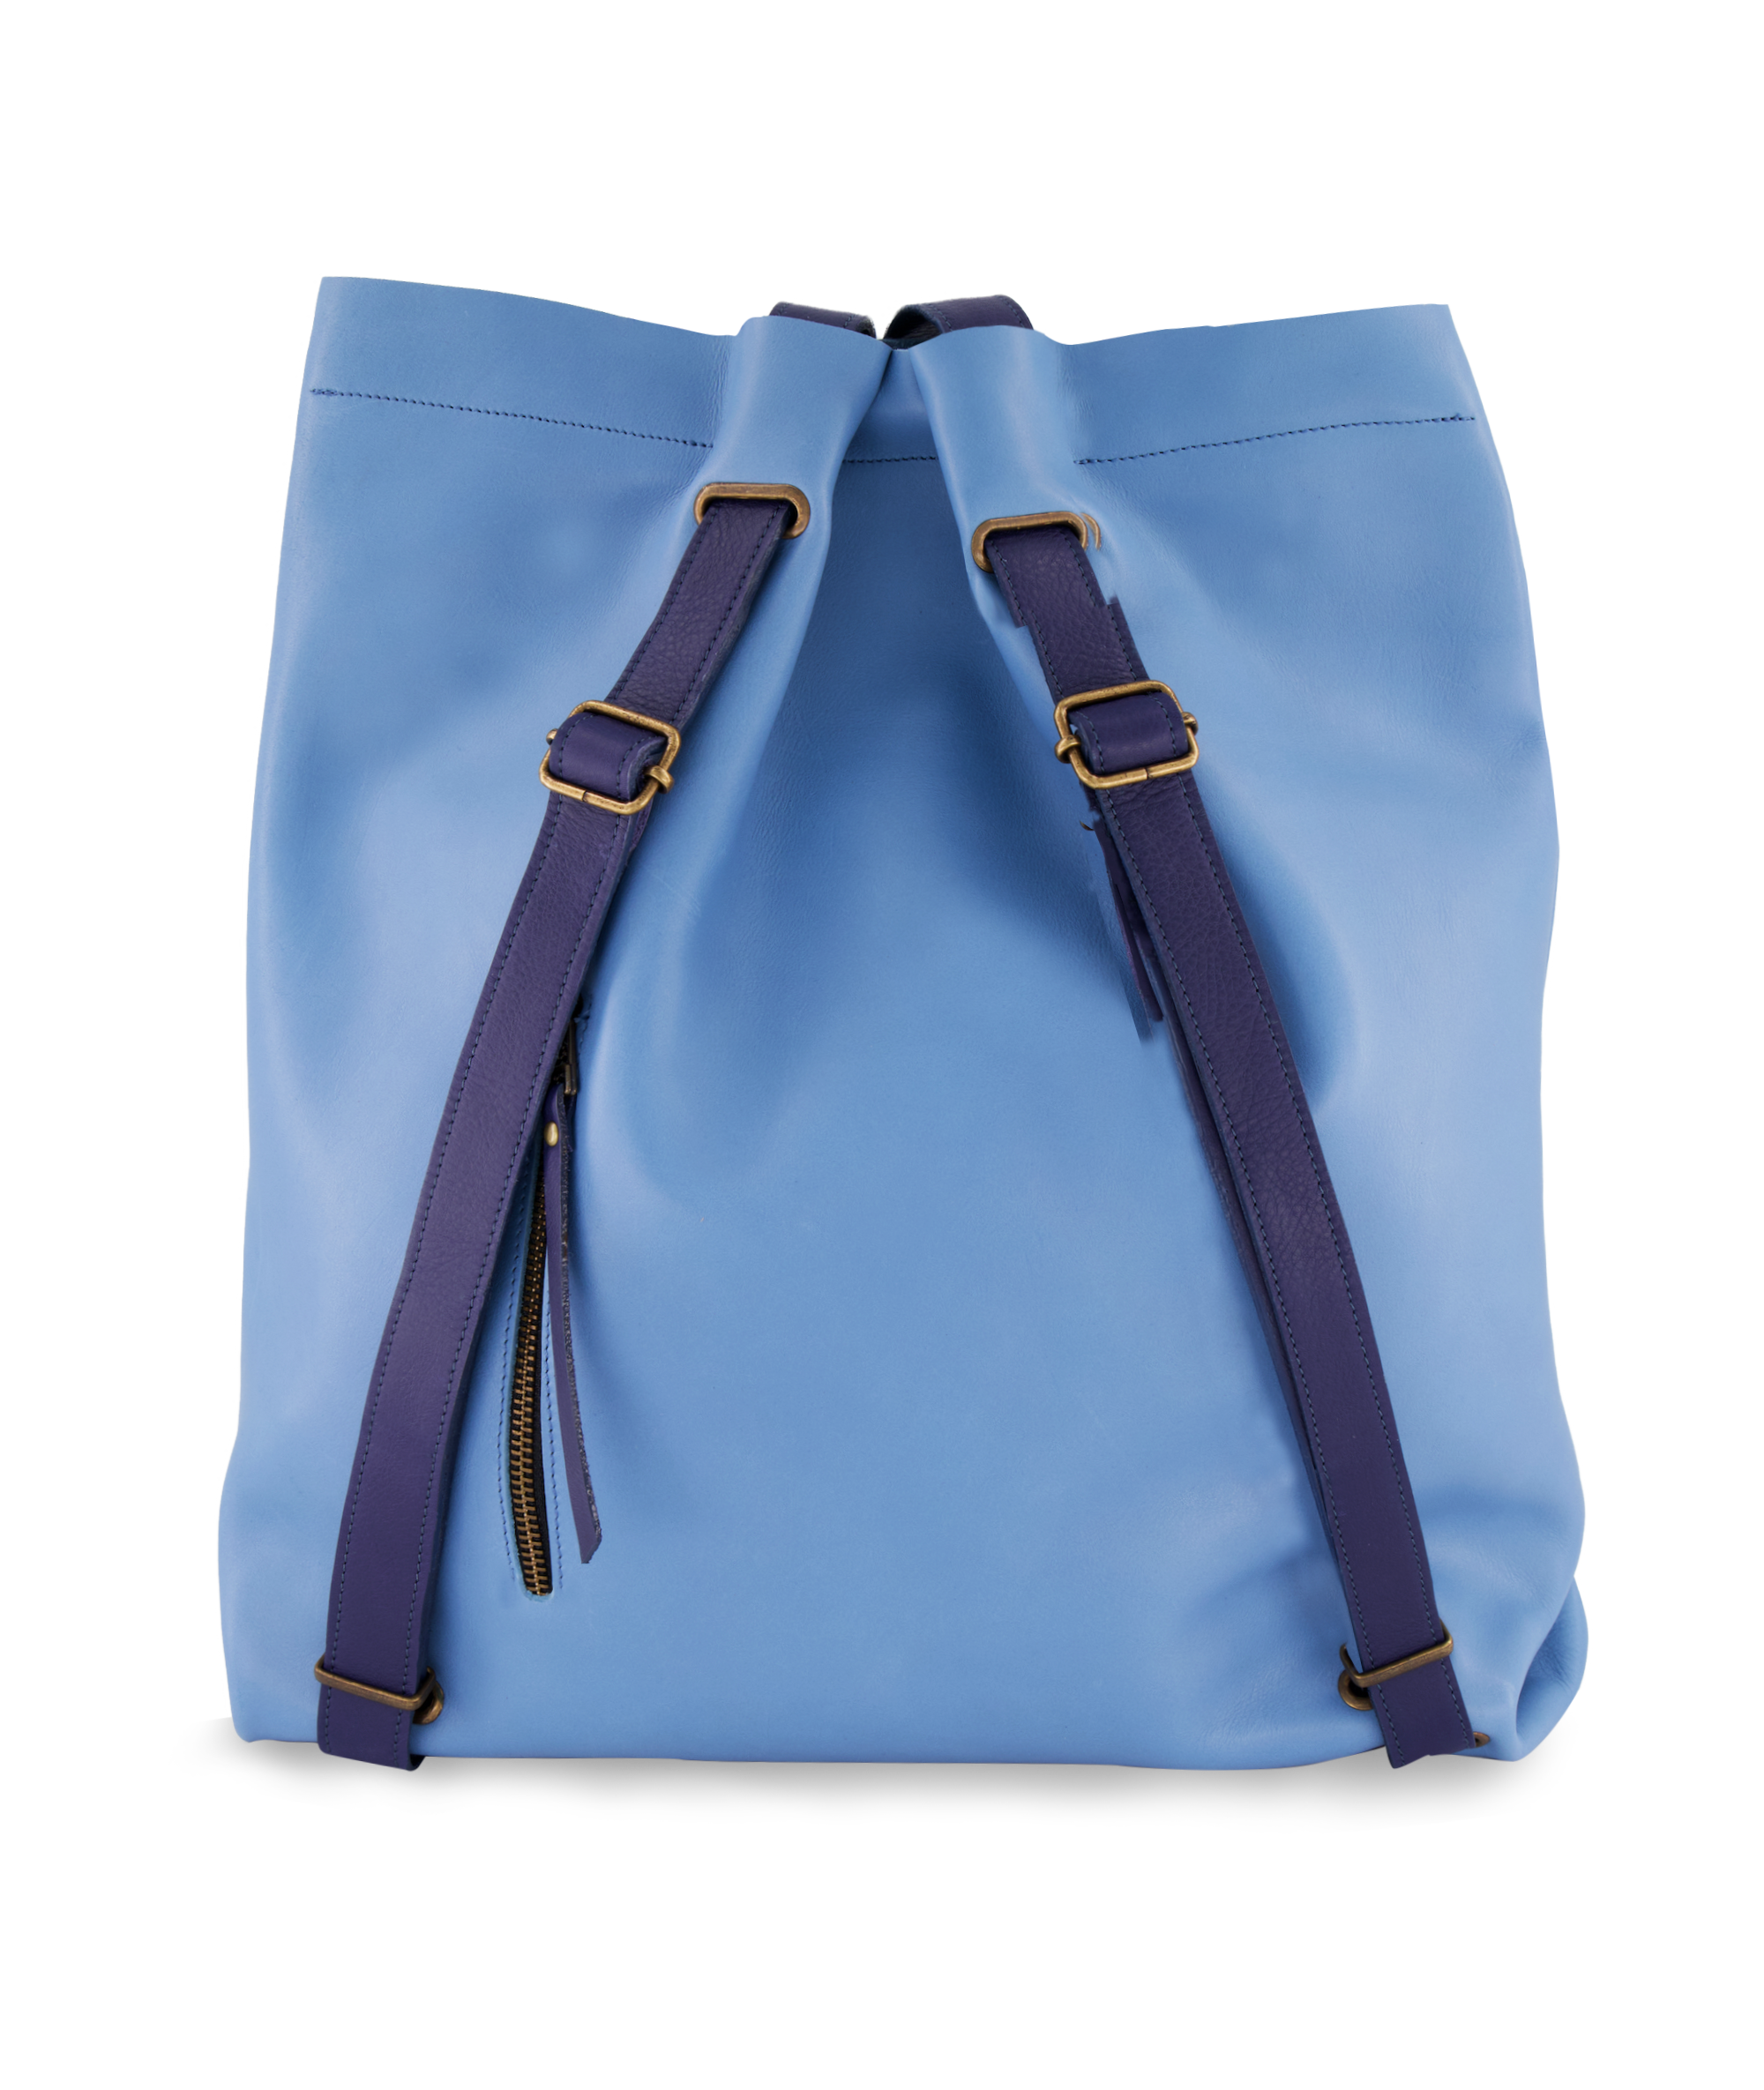 Convertible Backpack Ligth Blue and Indigo